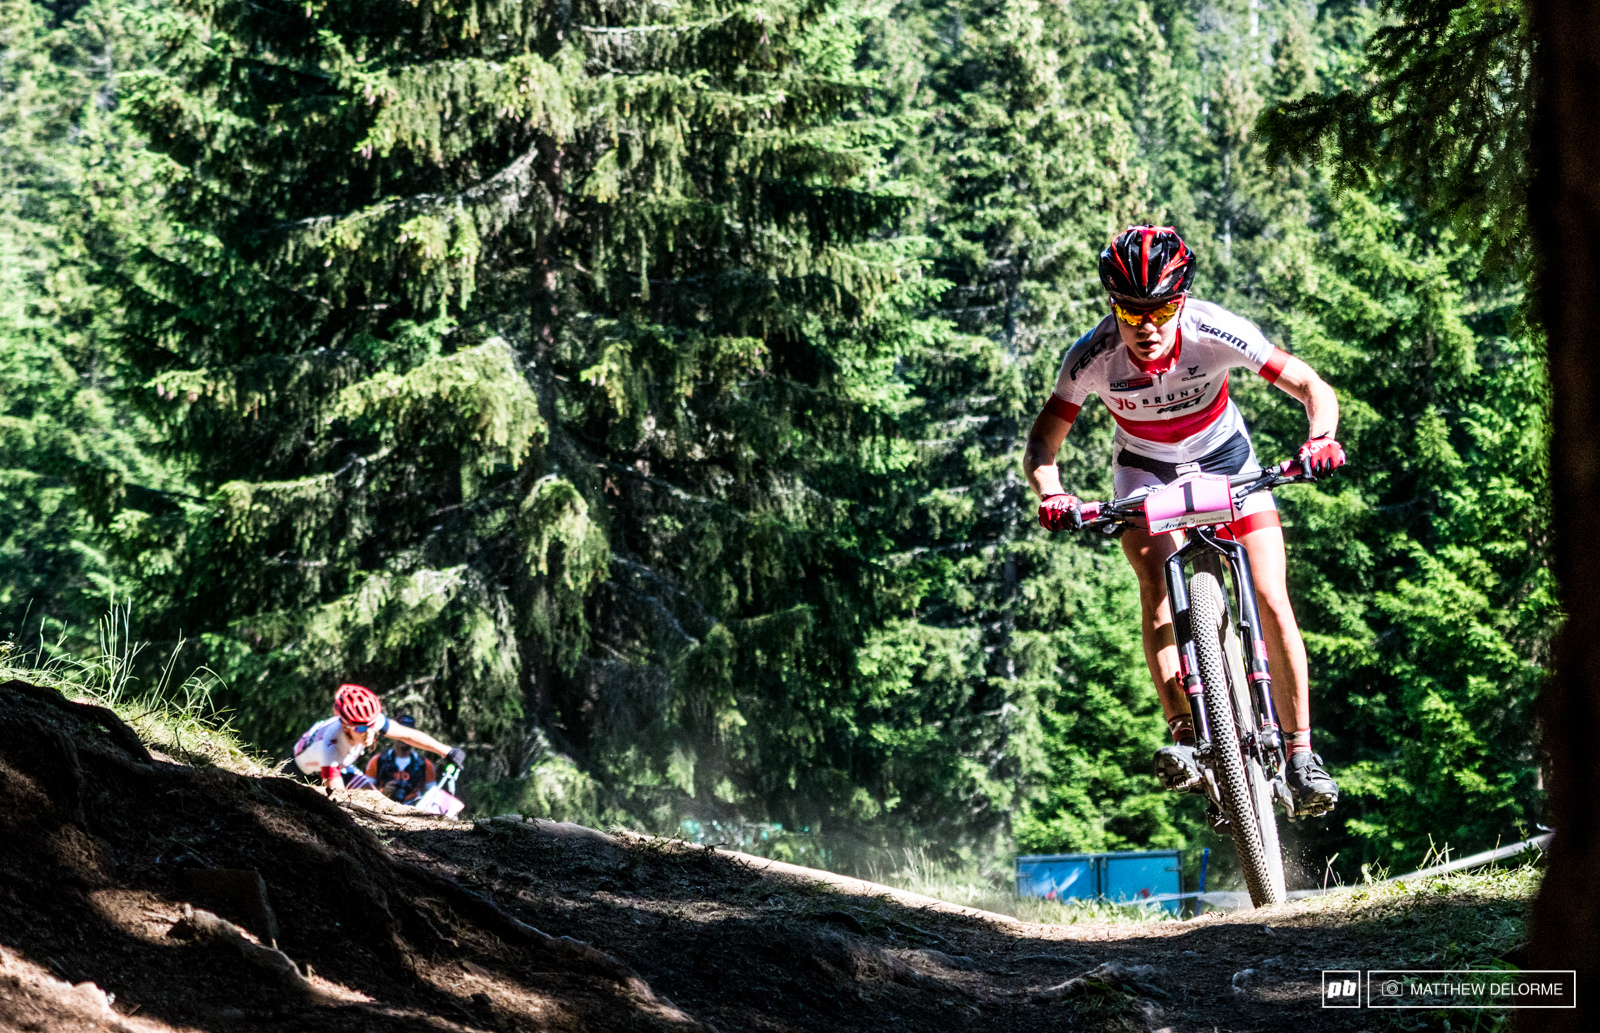 Sina Frey was back on the gas again in Lenzerheide and retained the leaders jersey after another win.